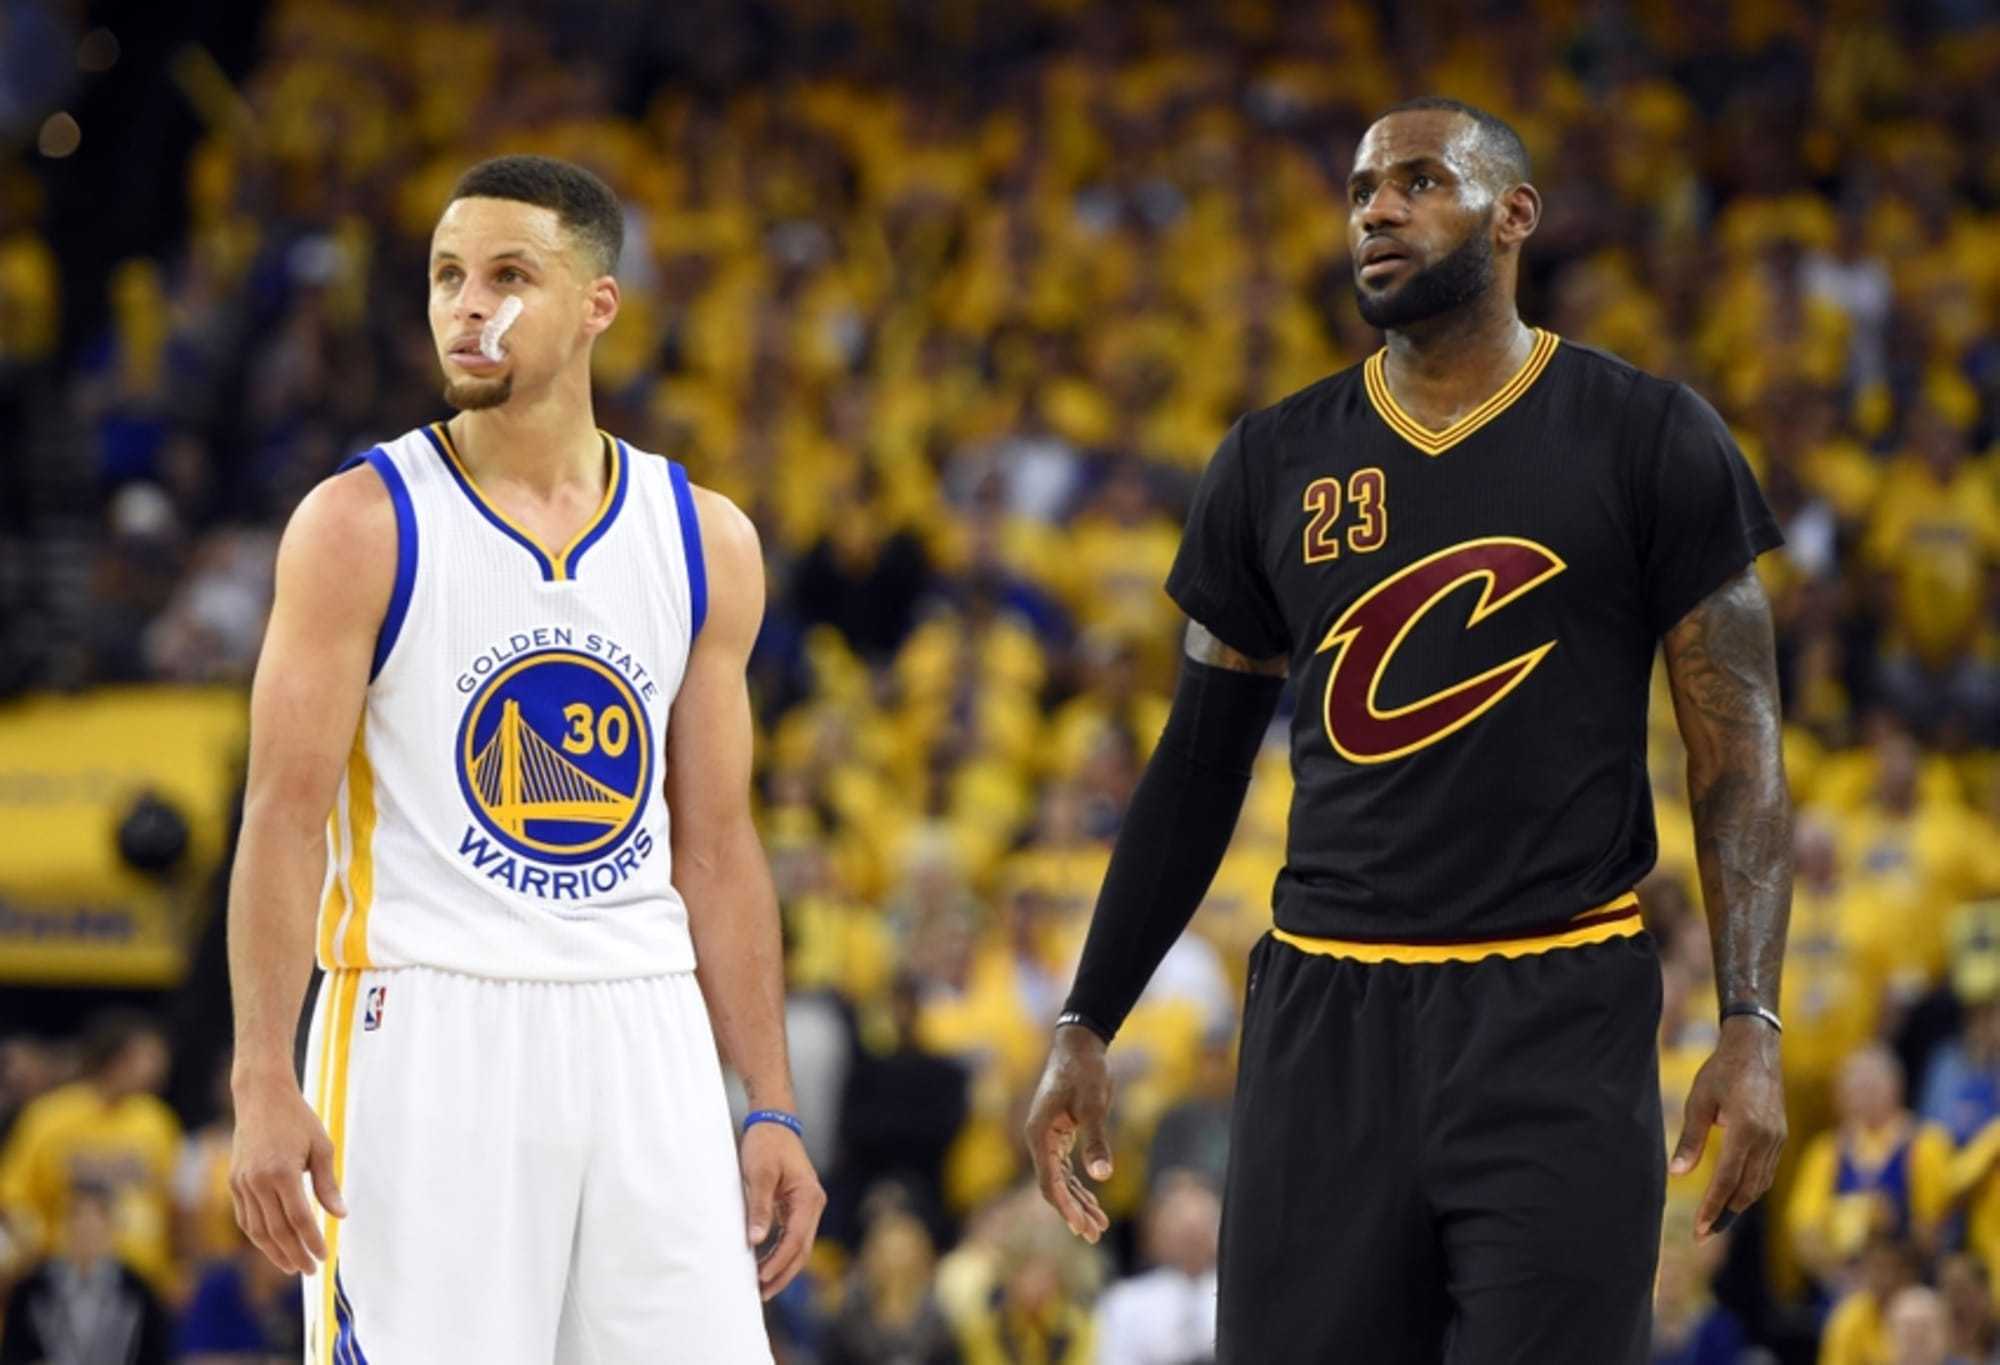 cleveland cavaliers vs warriors betting line